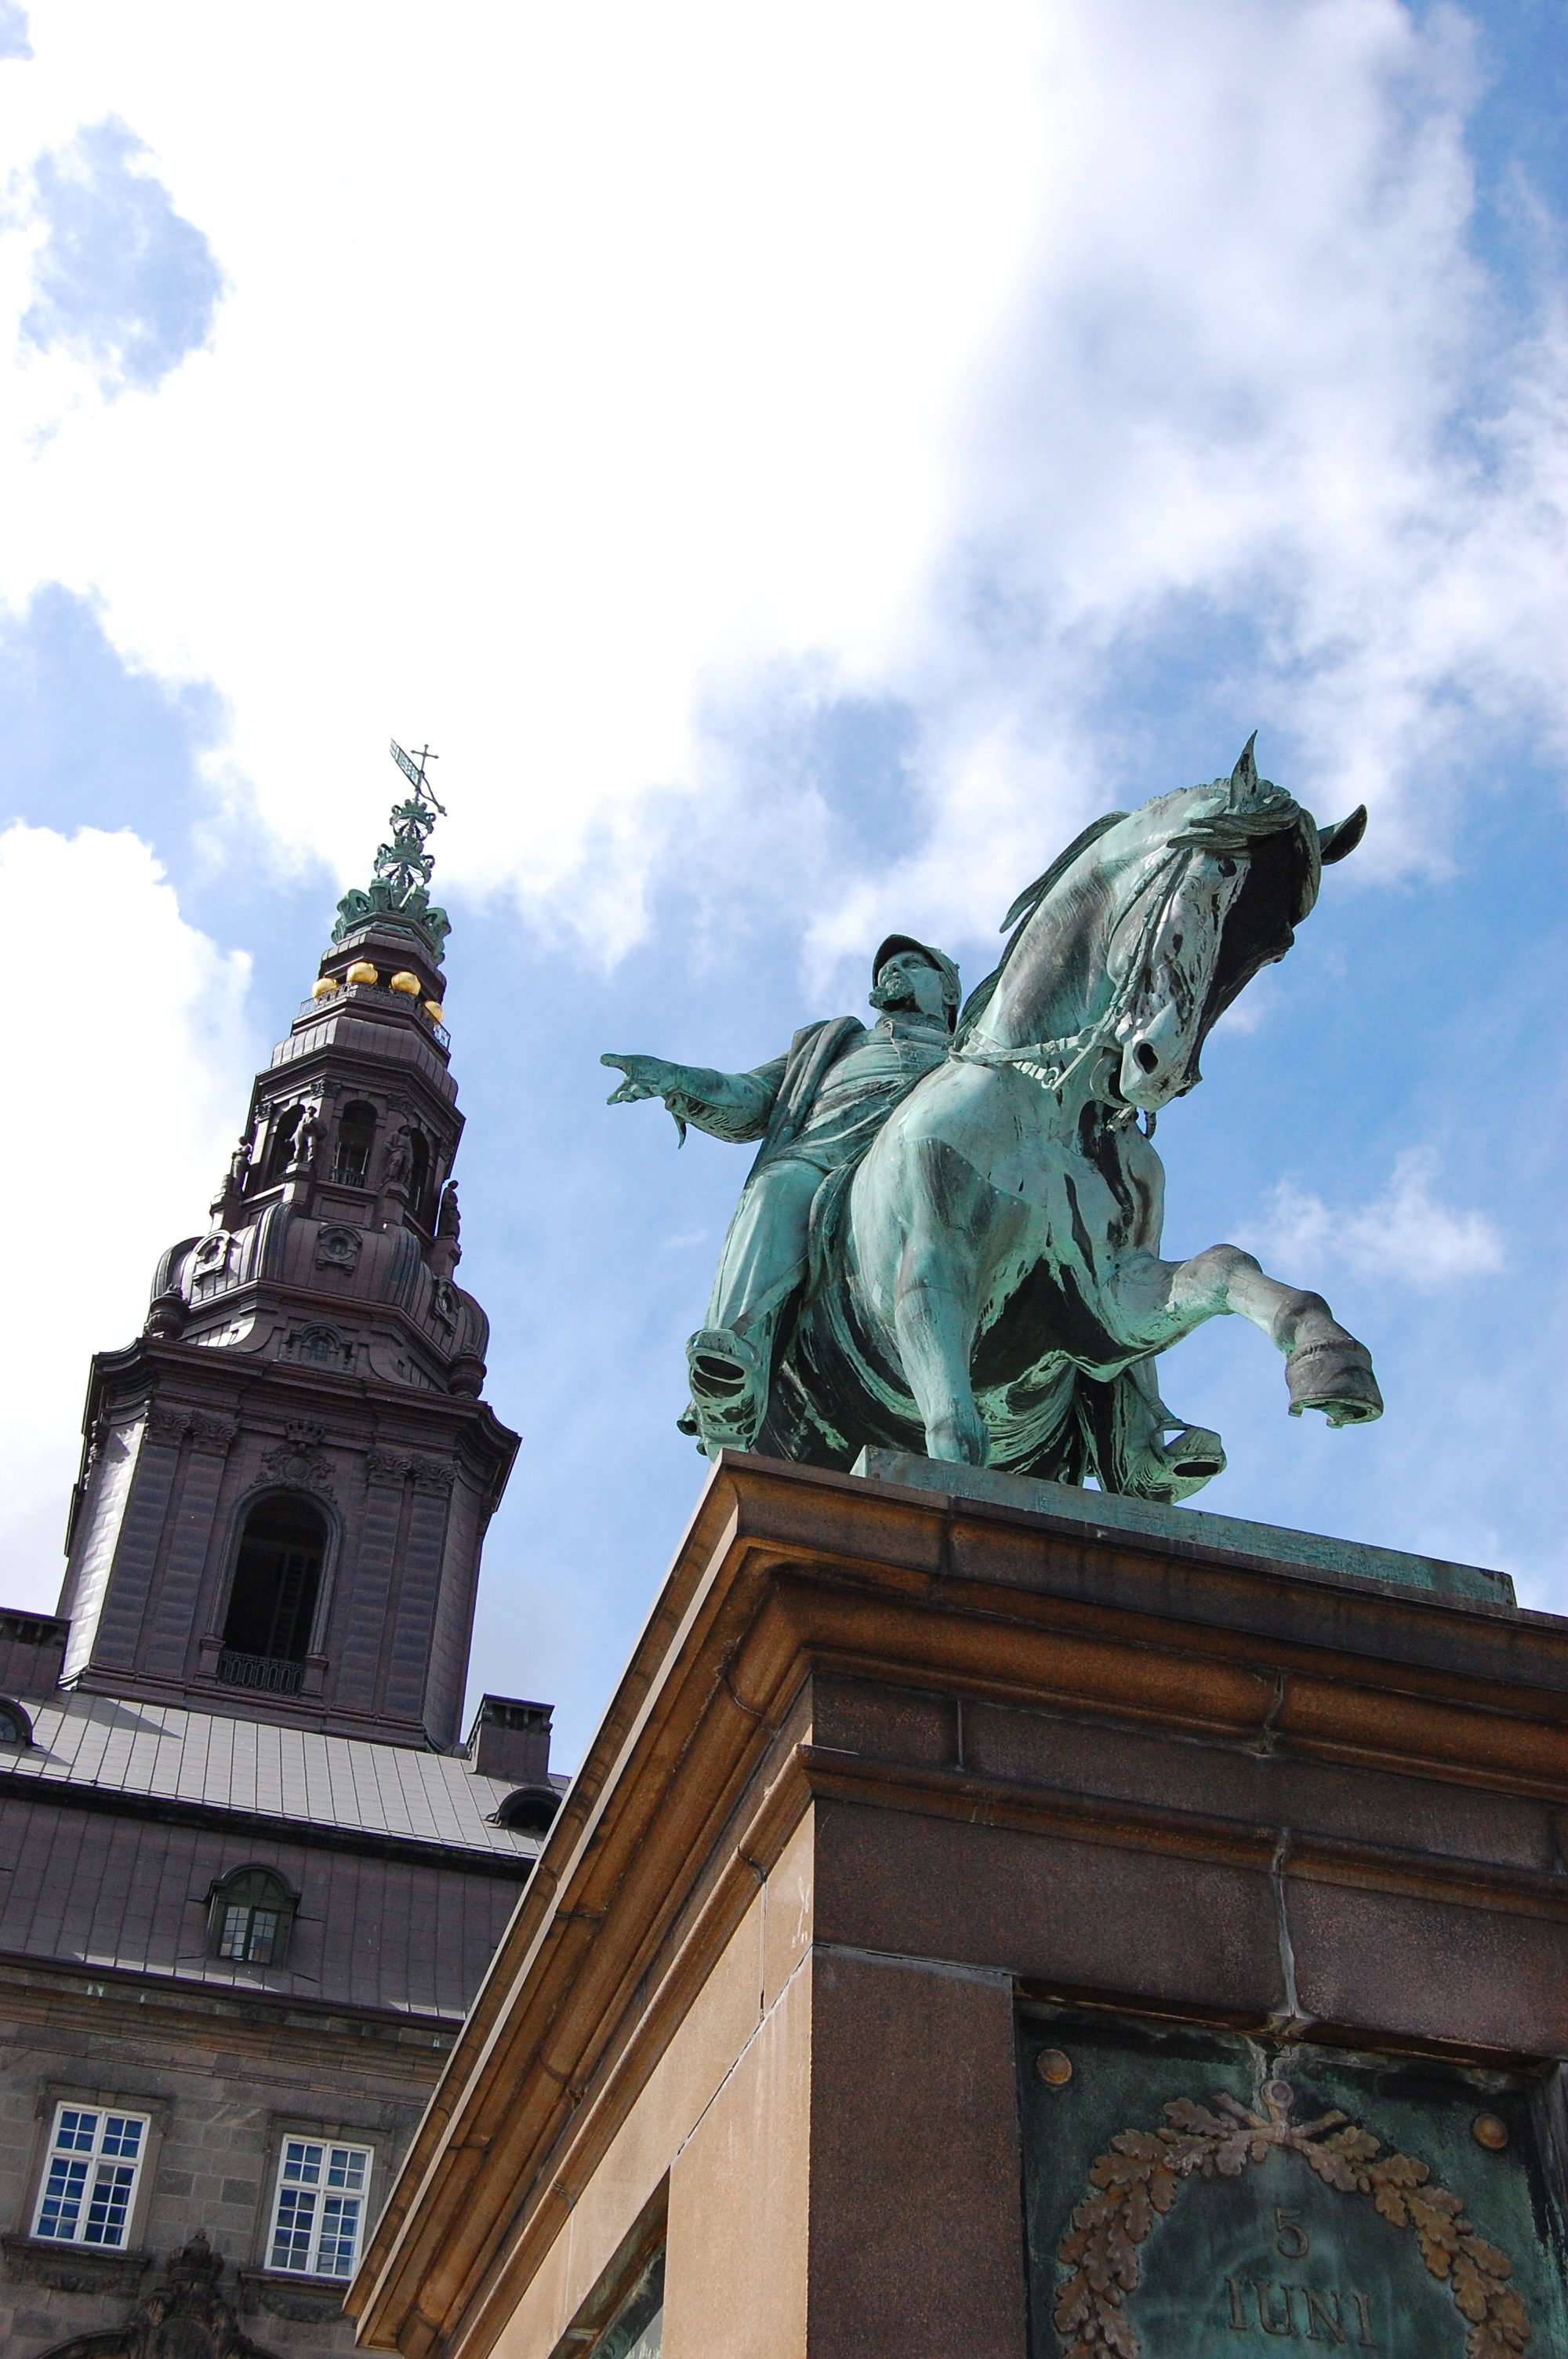 Christiansborg Palace and statue